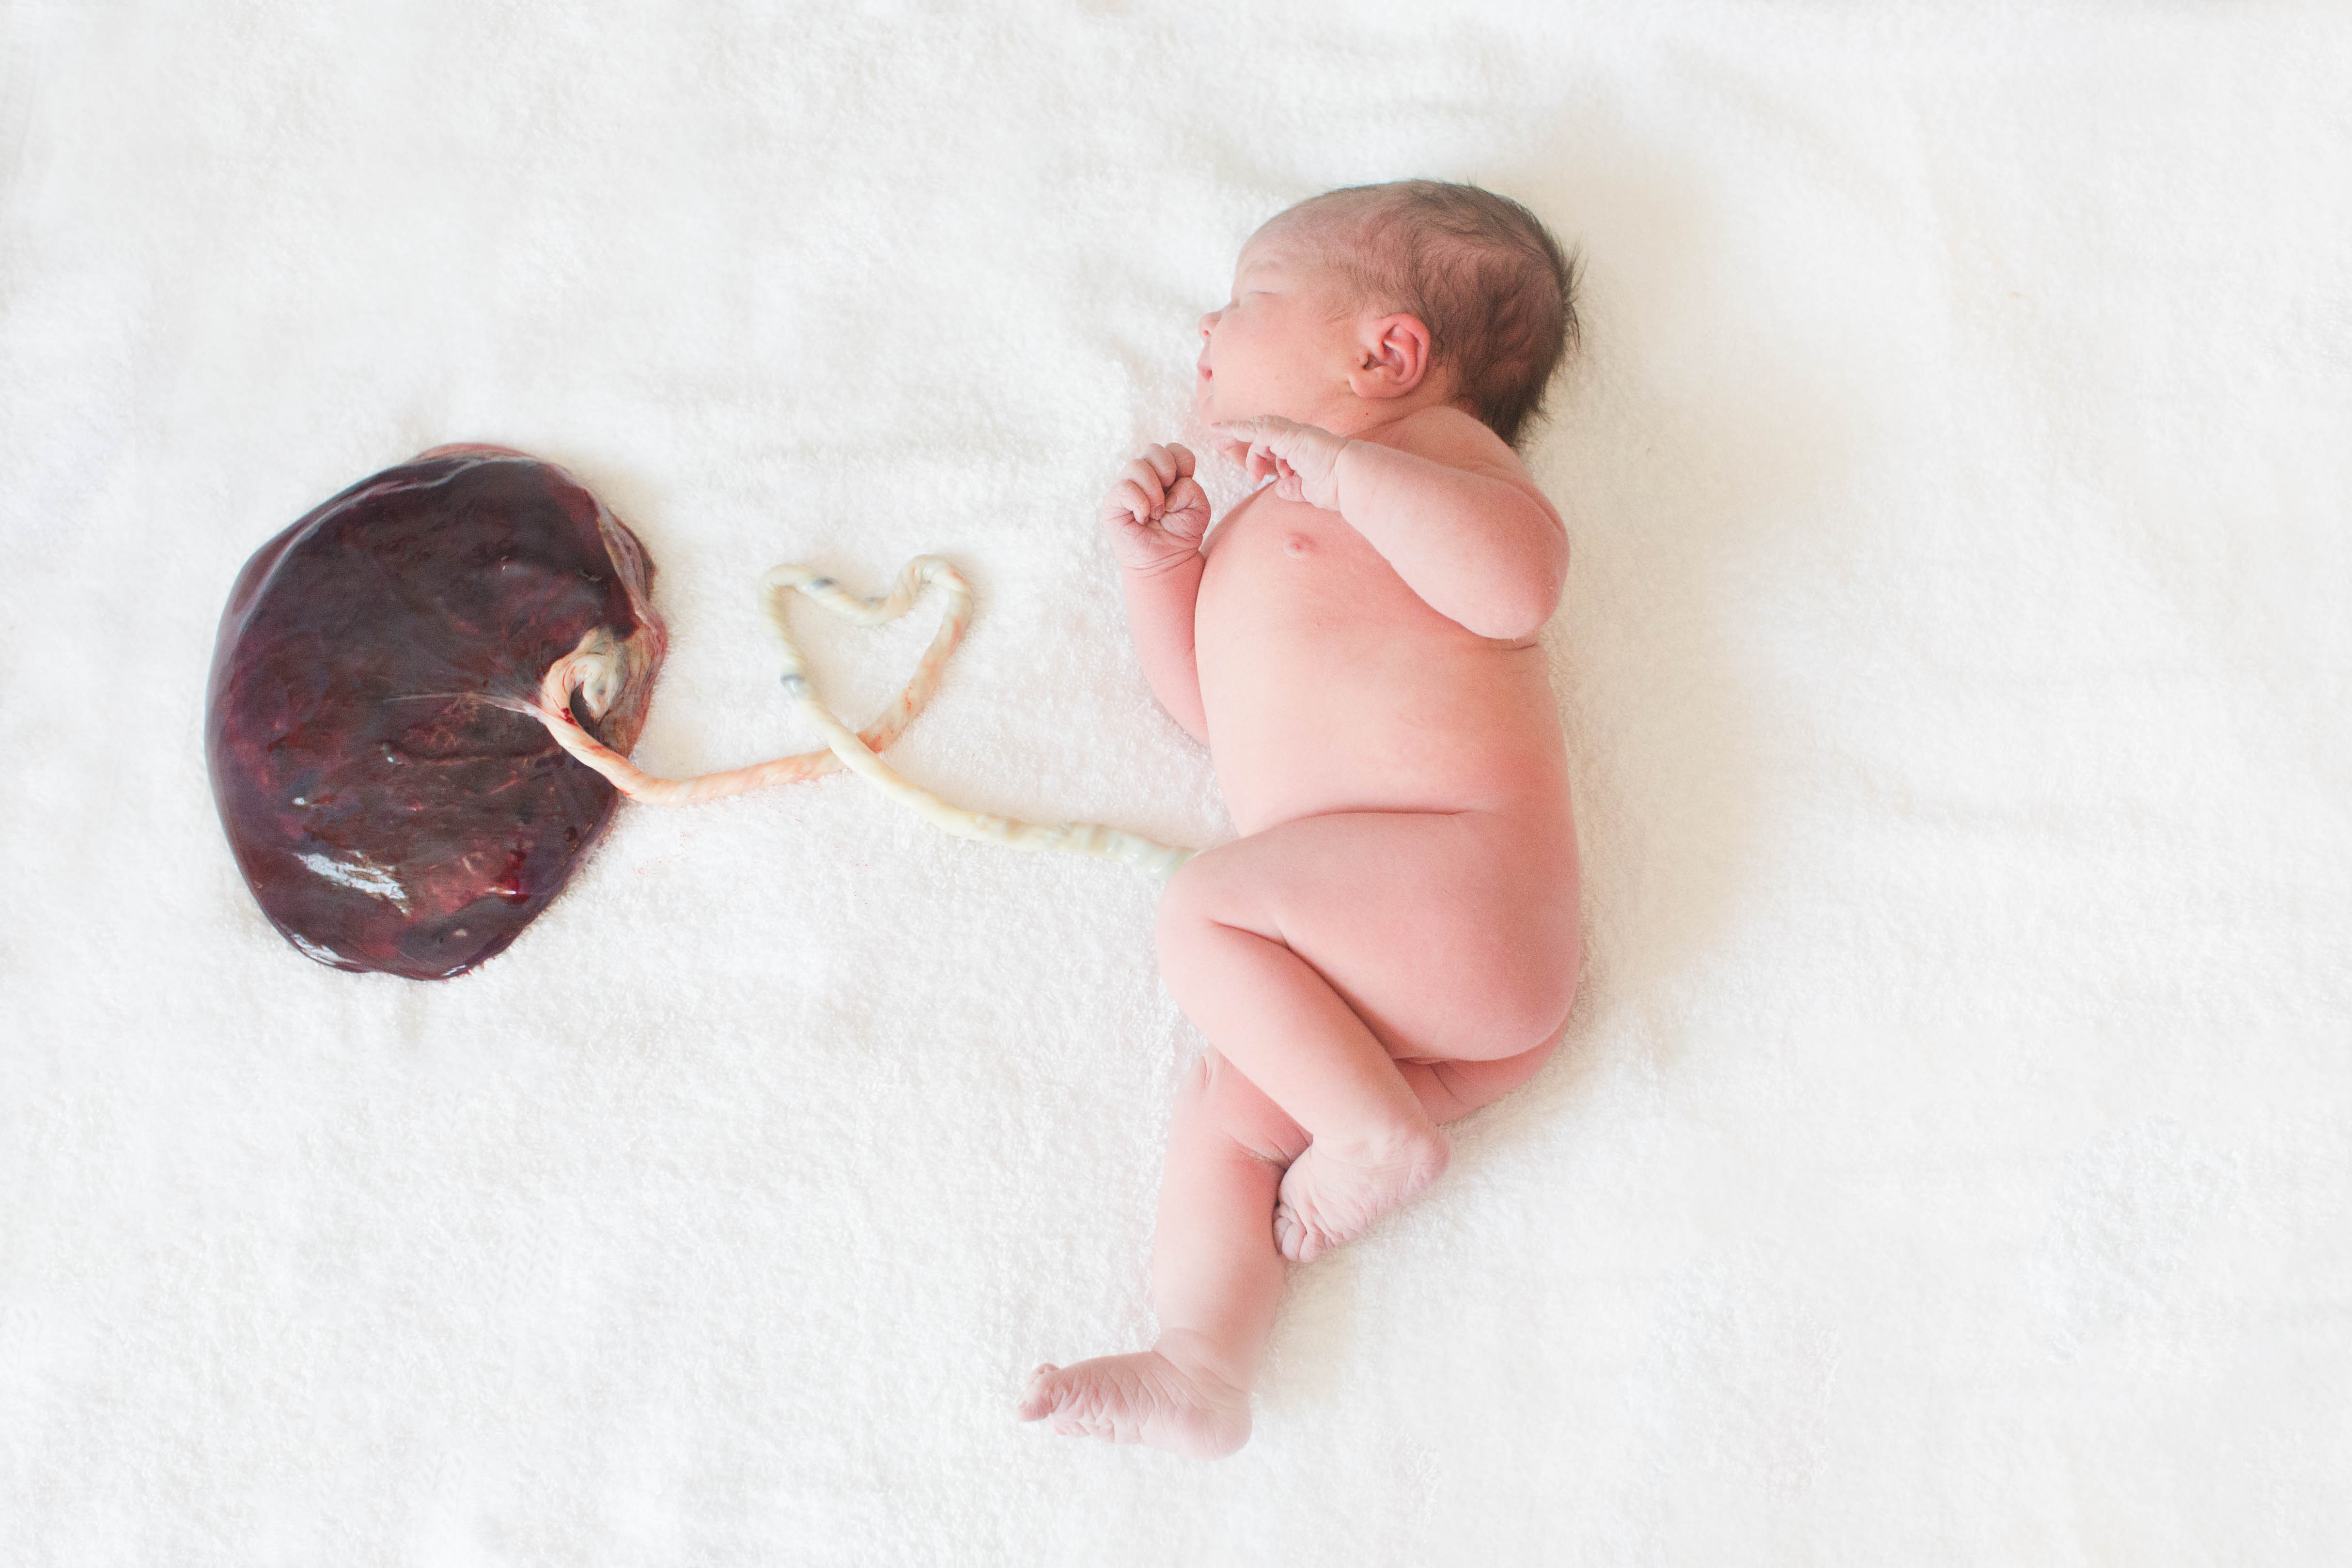 Bellingham birth photographer Renee Bergeron captures the miracle of new life.